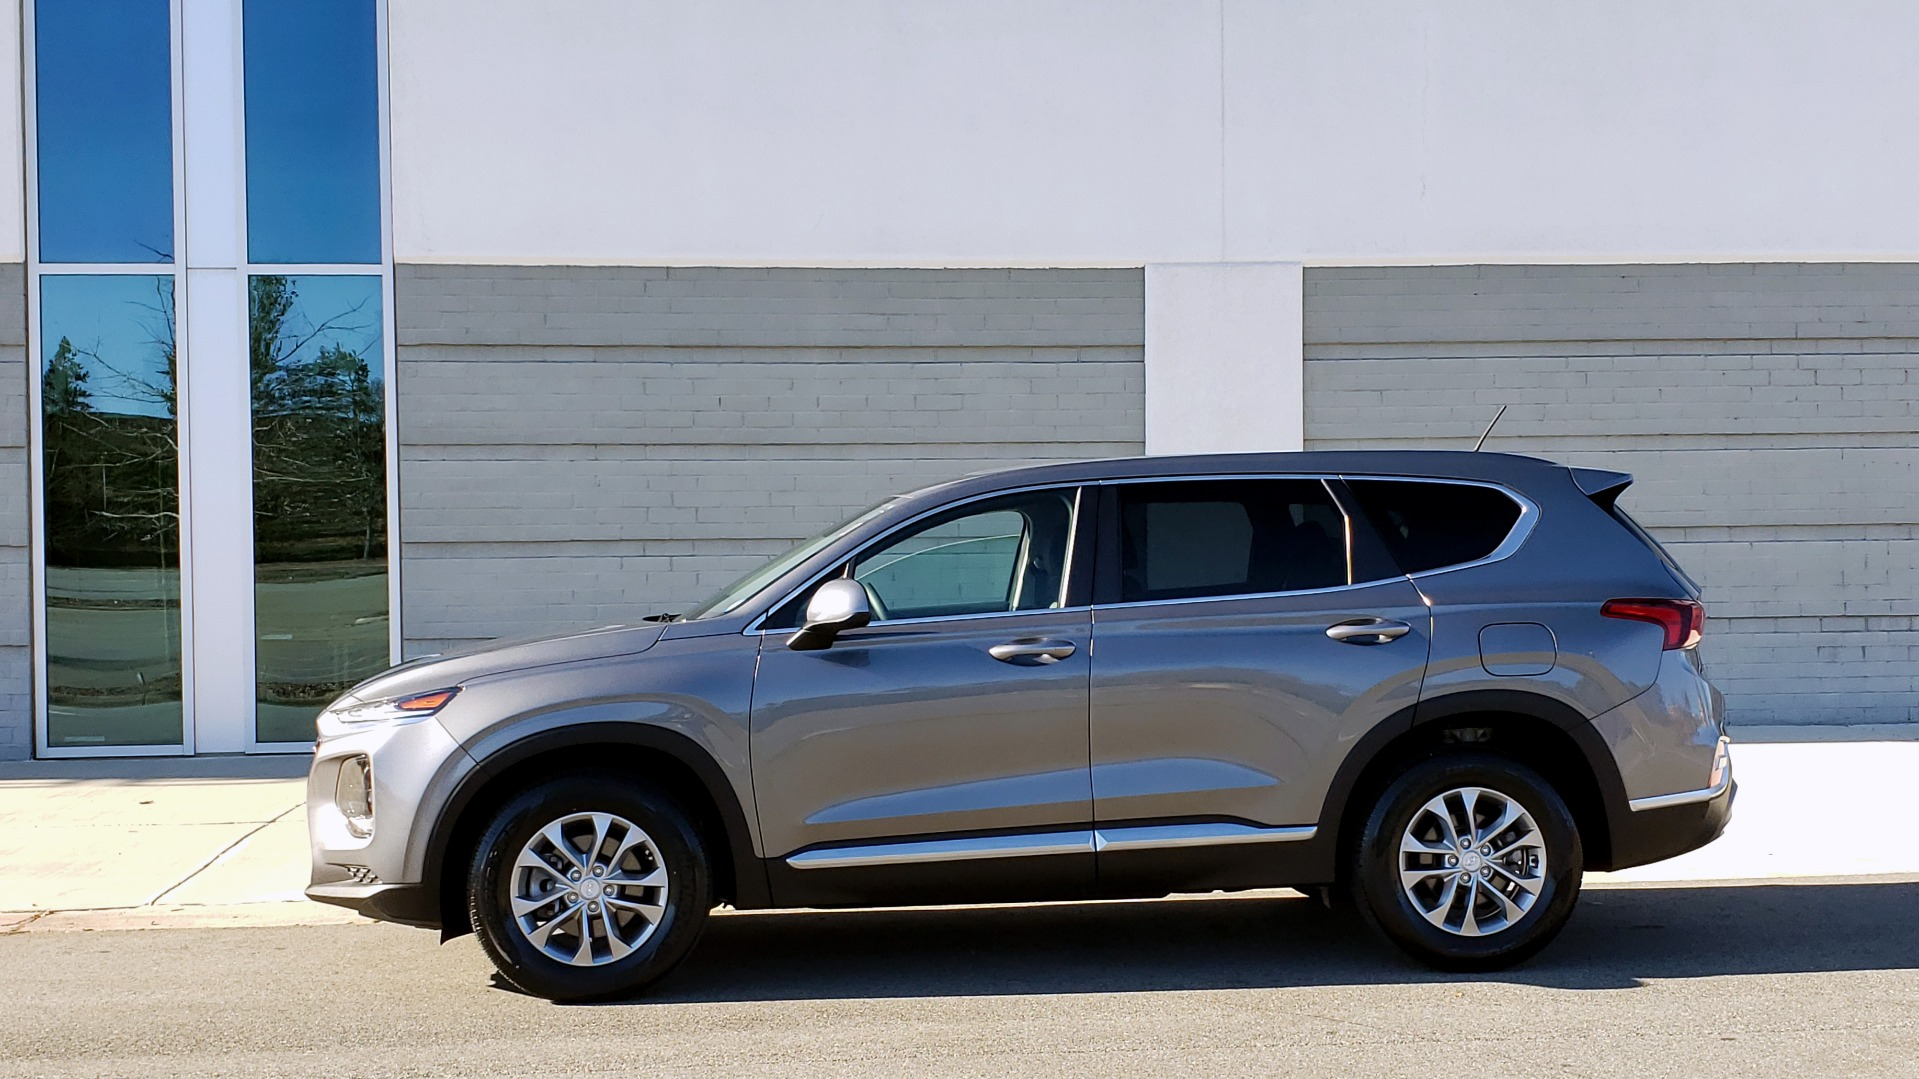 Used 2019 Hyundai SANTA FE SE / 2.4L 4-CYL / 8-SPD AUTO / BLIND SPOT / LANE KEEP ASSIST for sale Sold at Formula Imports in Charlotte NC 28227 6